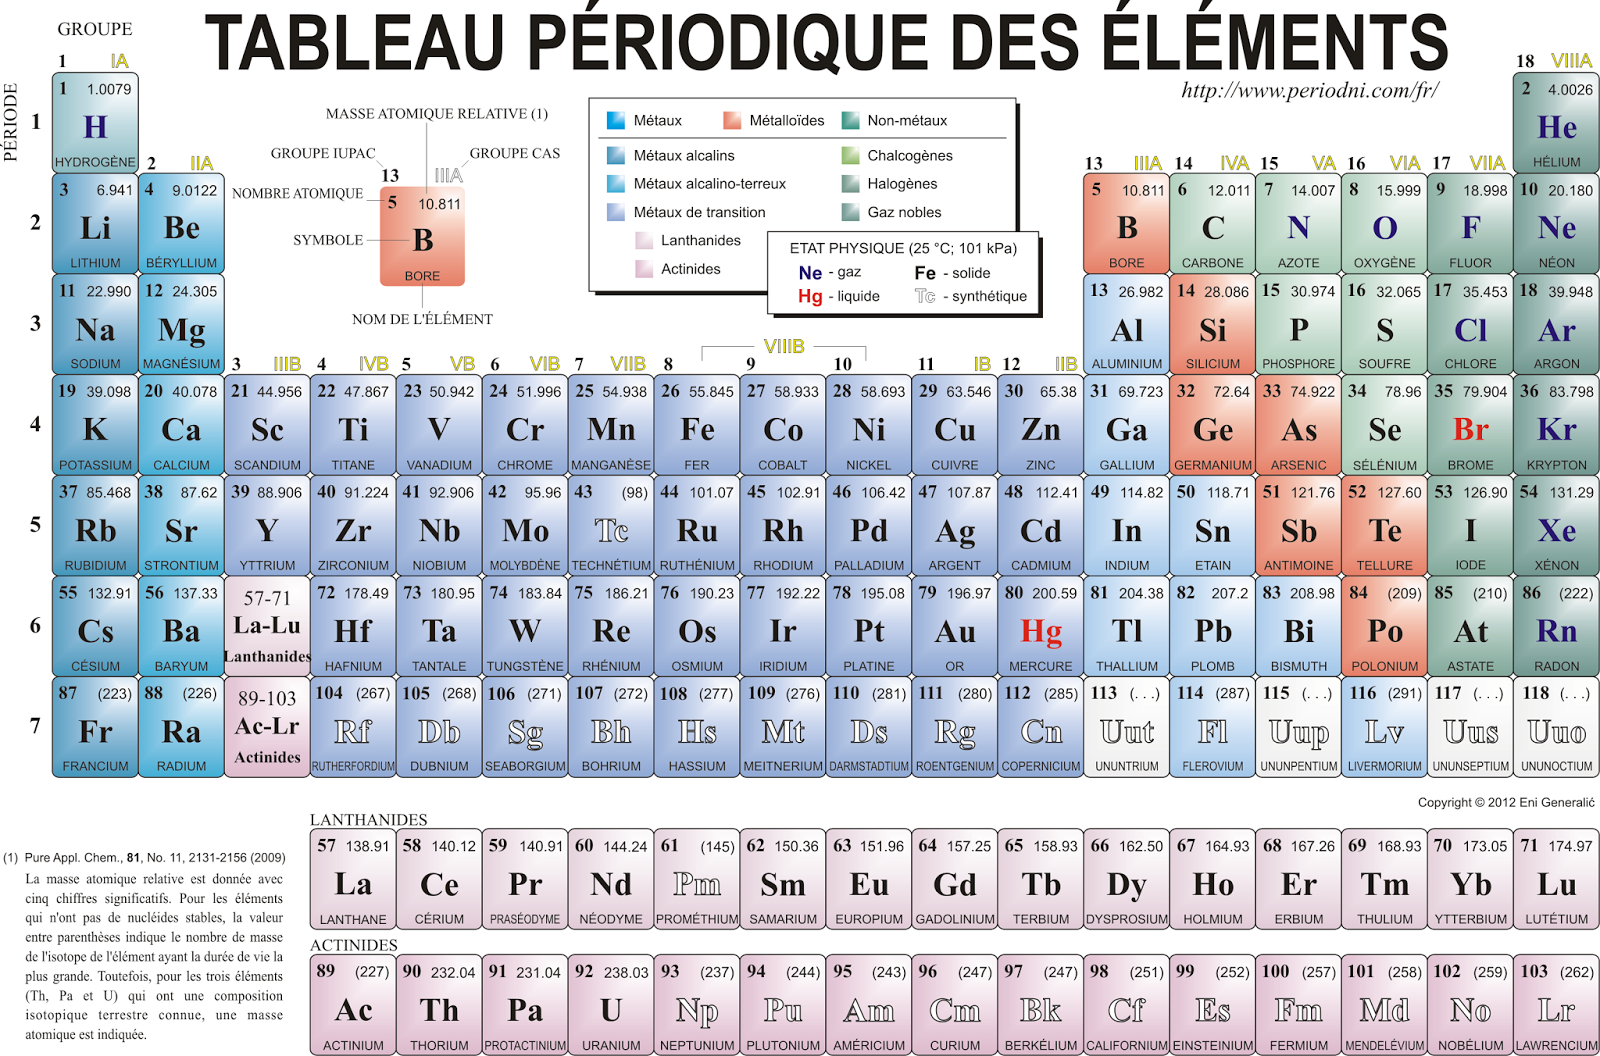 Tableau periodique pharmacours for I tableau periodique